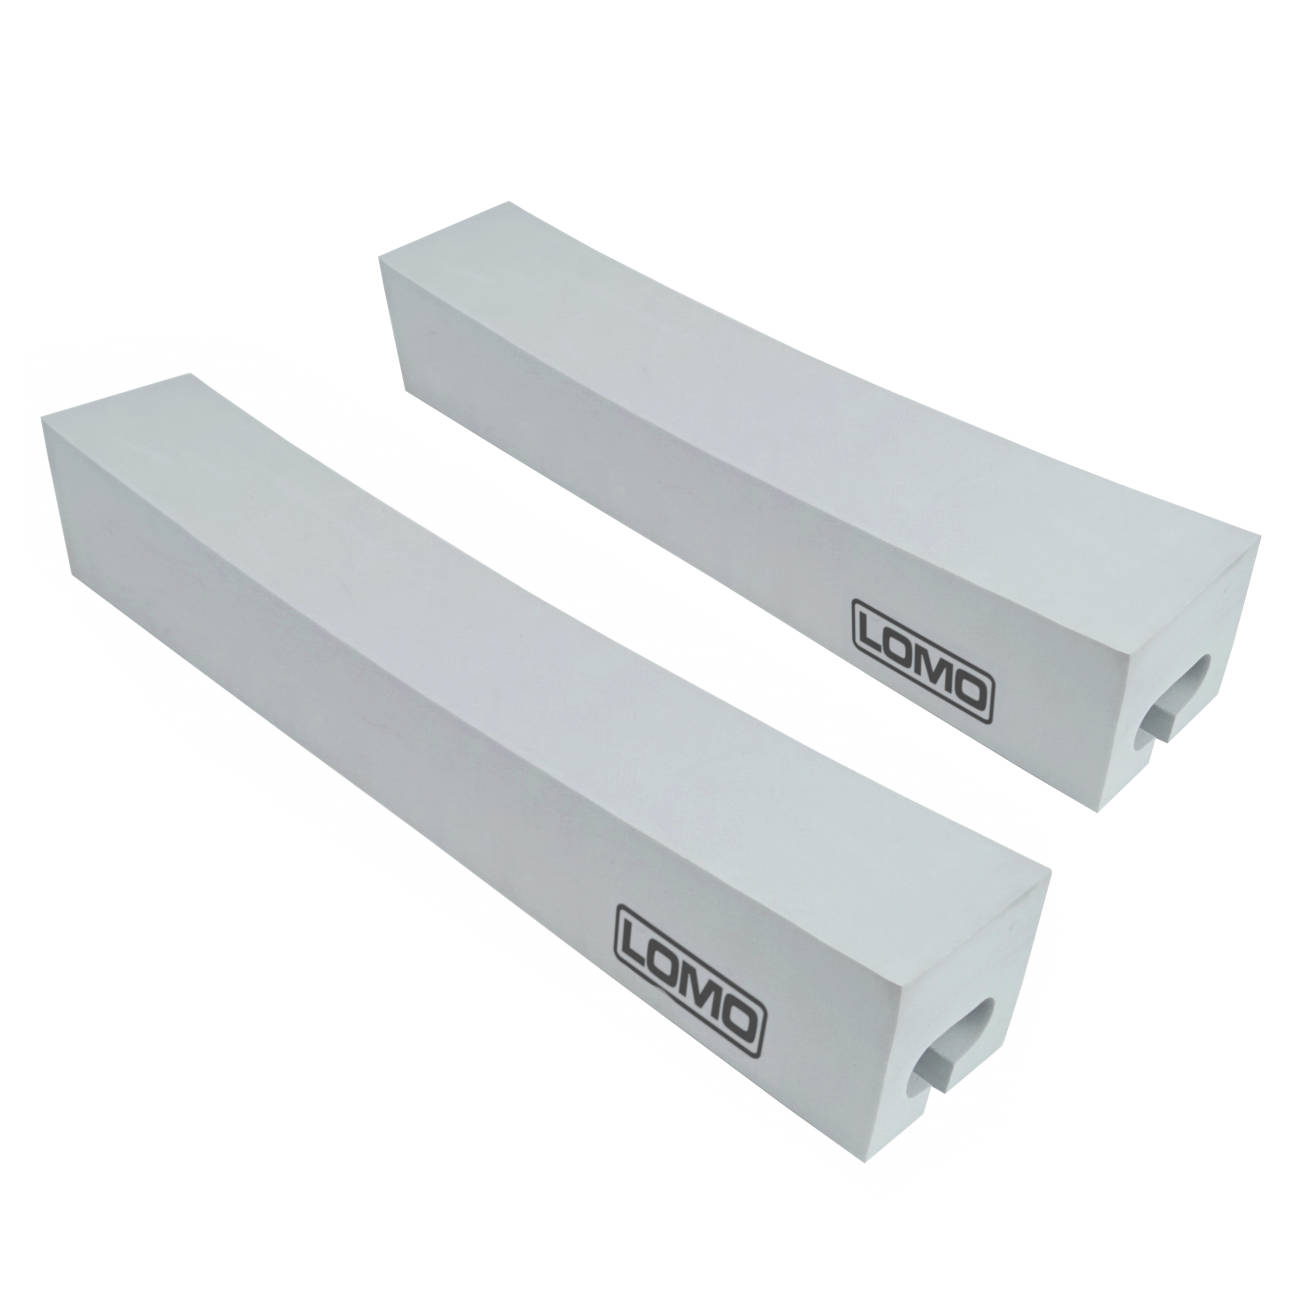 Kayak Foam Roof Rack Blocks - Pair